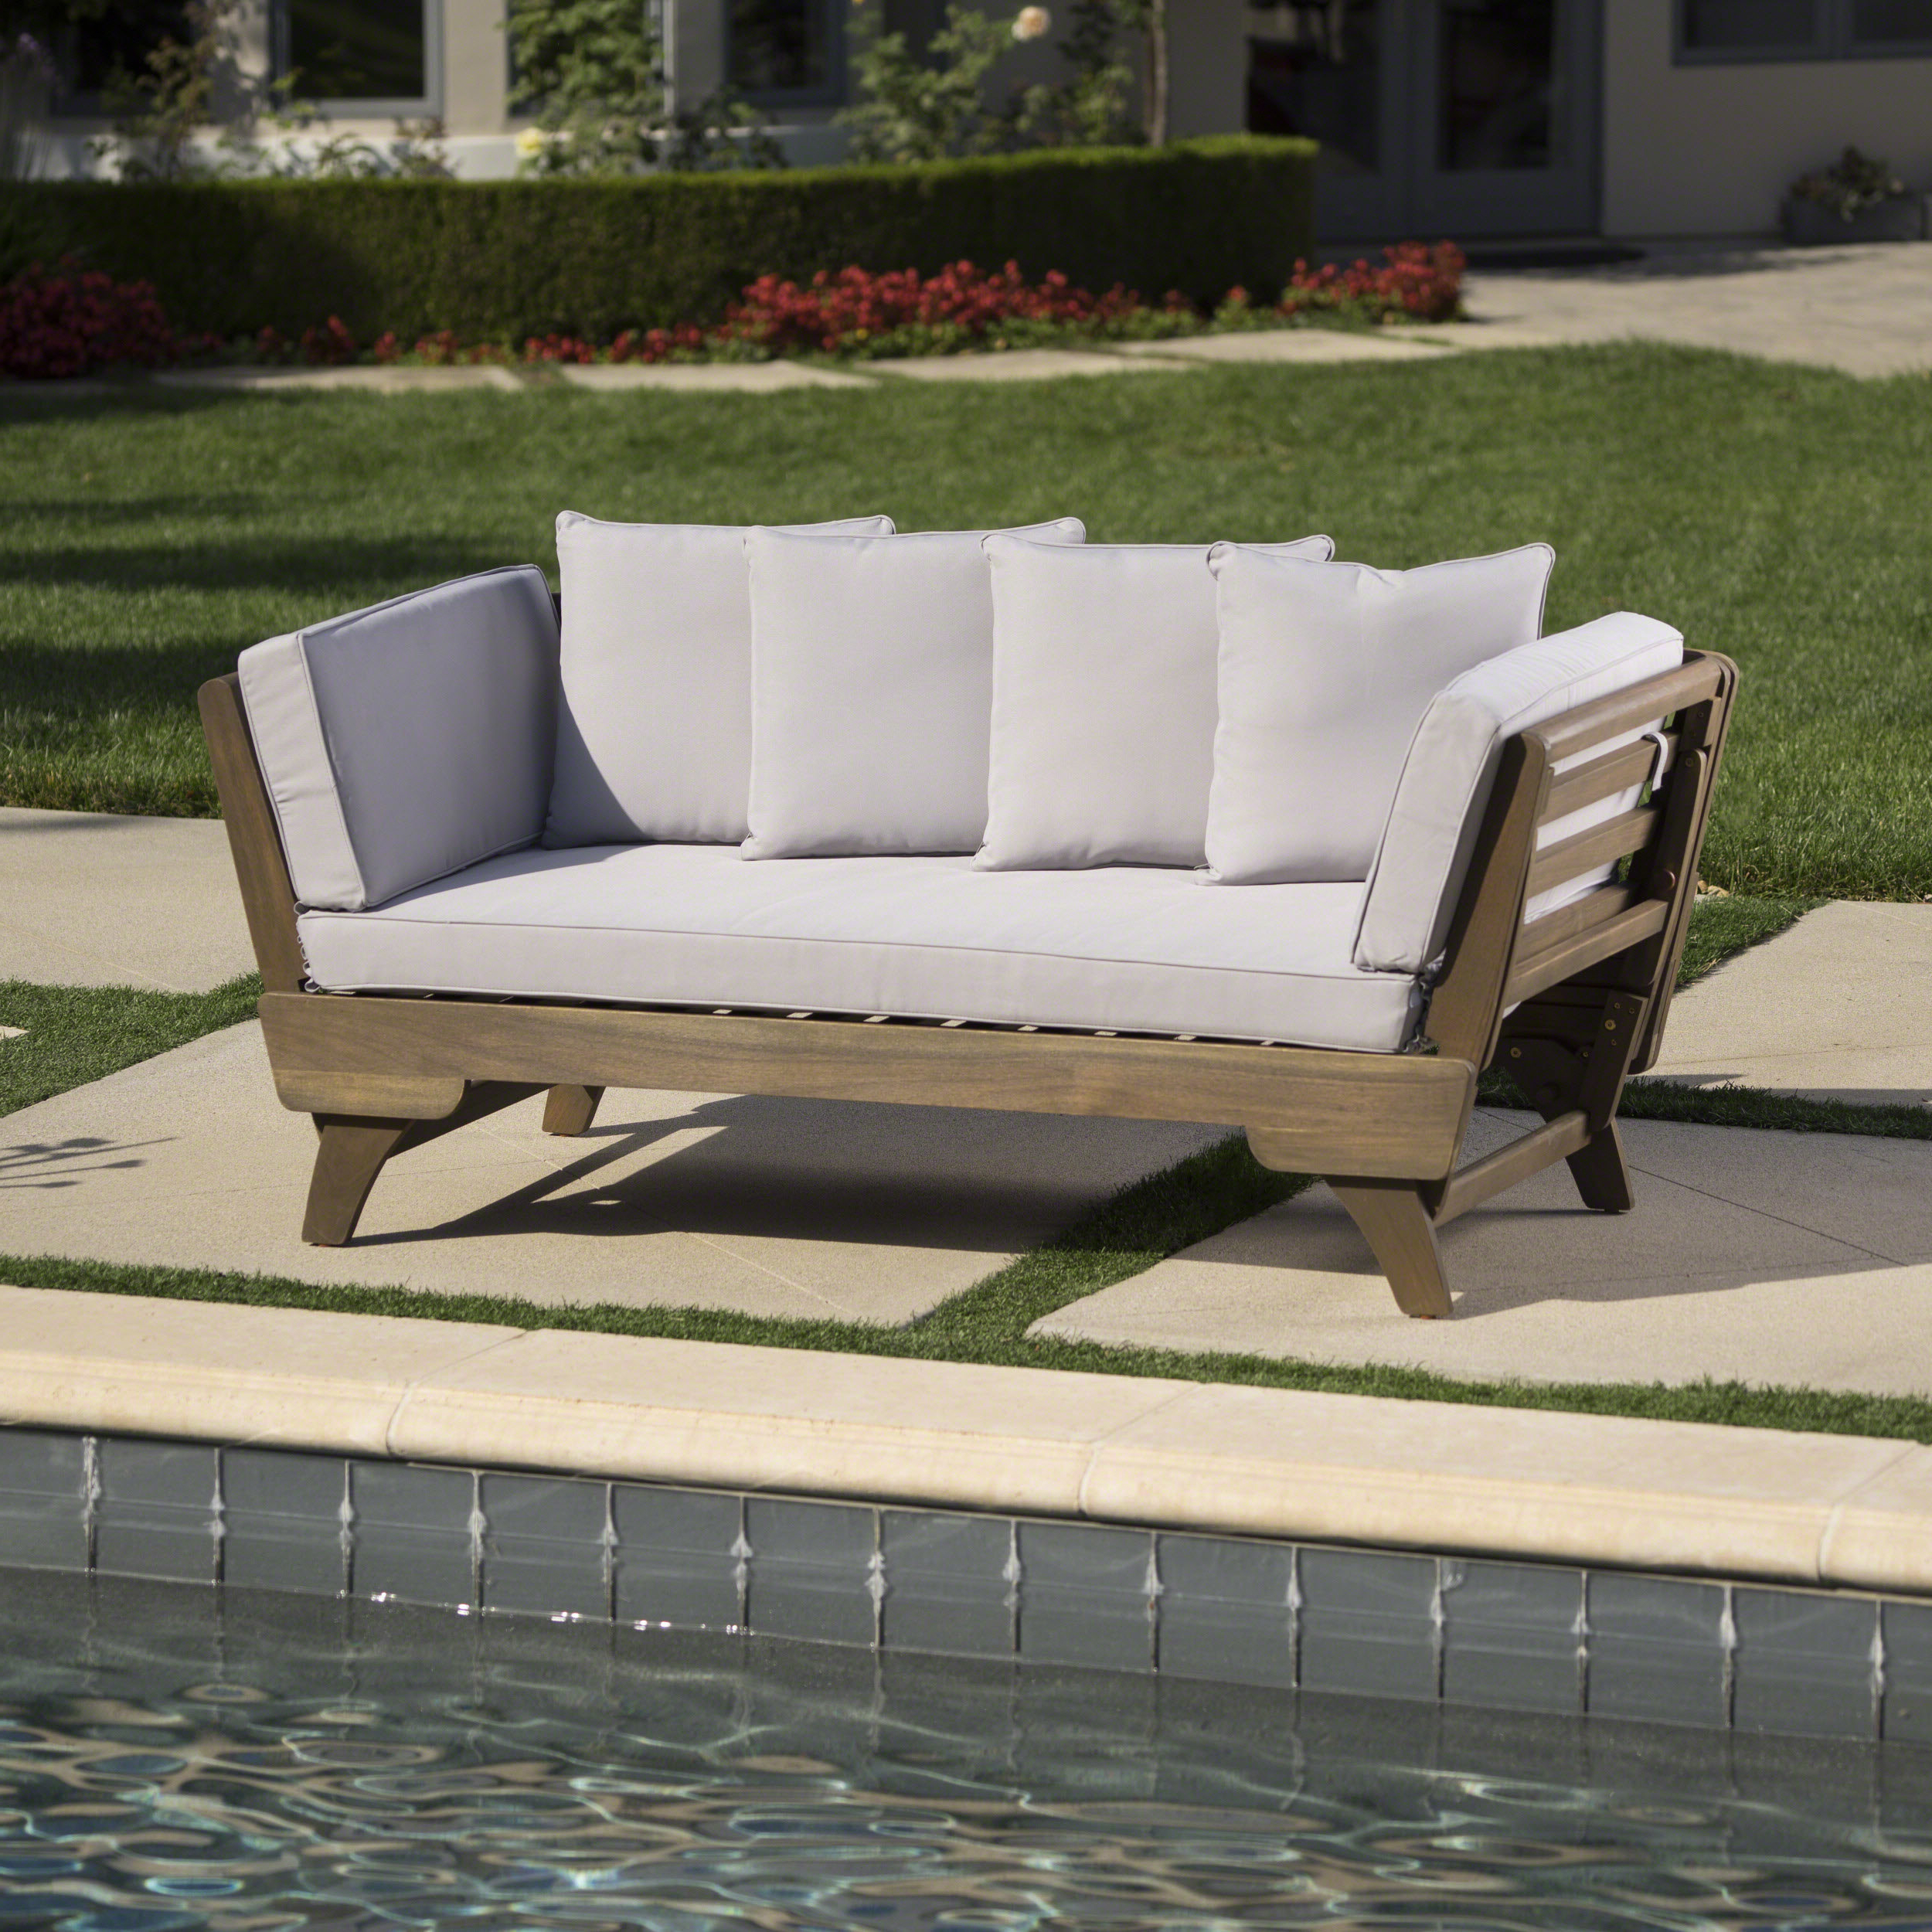 Widely Used Roush Teak Patio Daybeds With Cushions For Ellanti Teak Patio Daybed With Cushions (View 20 of 20)